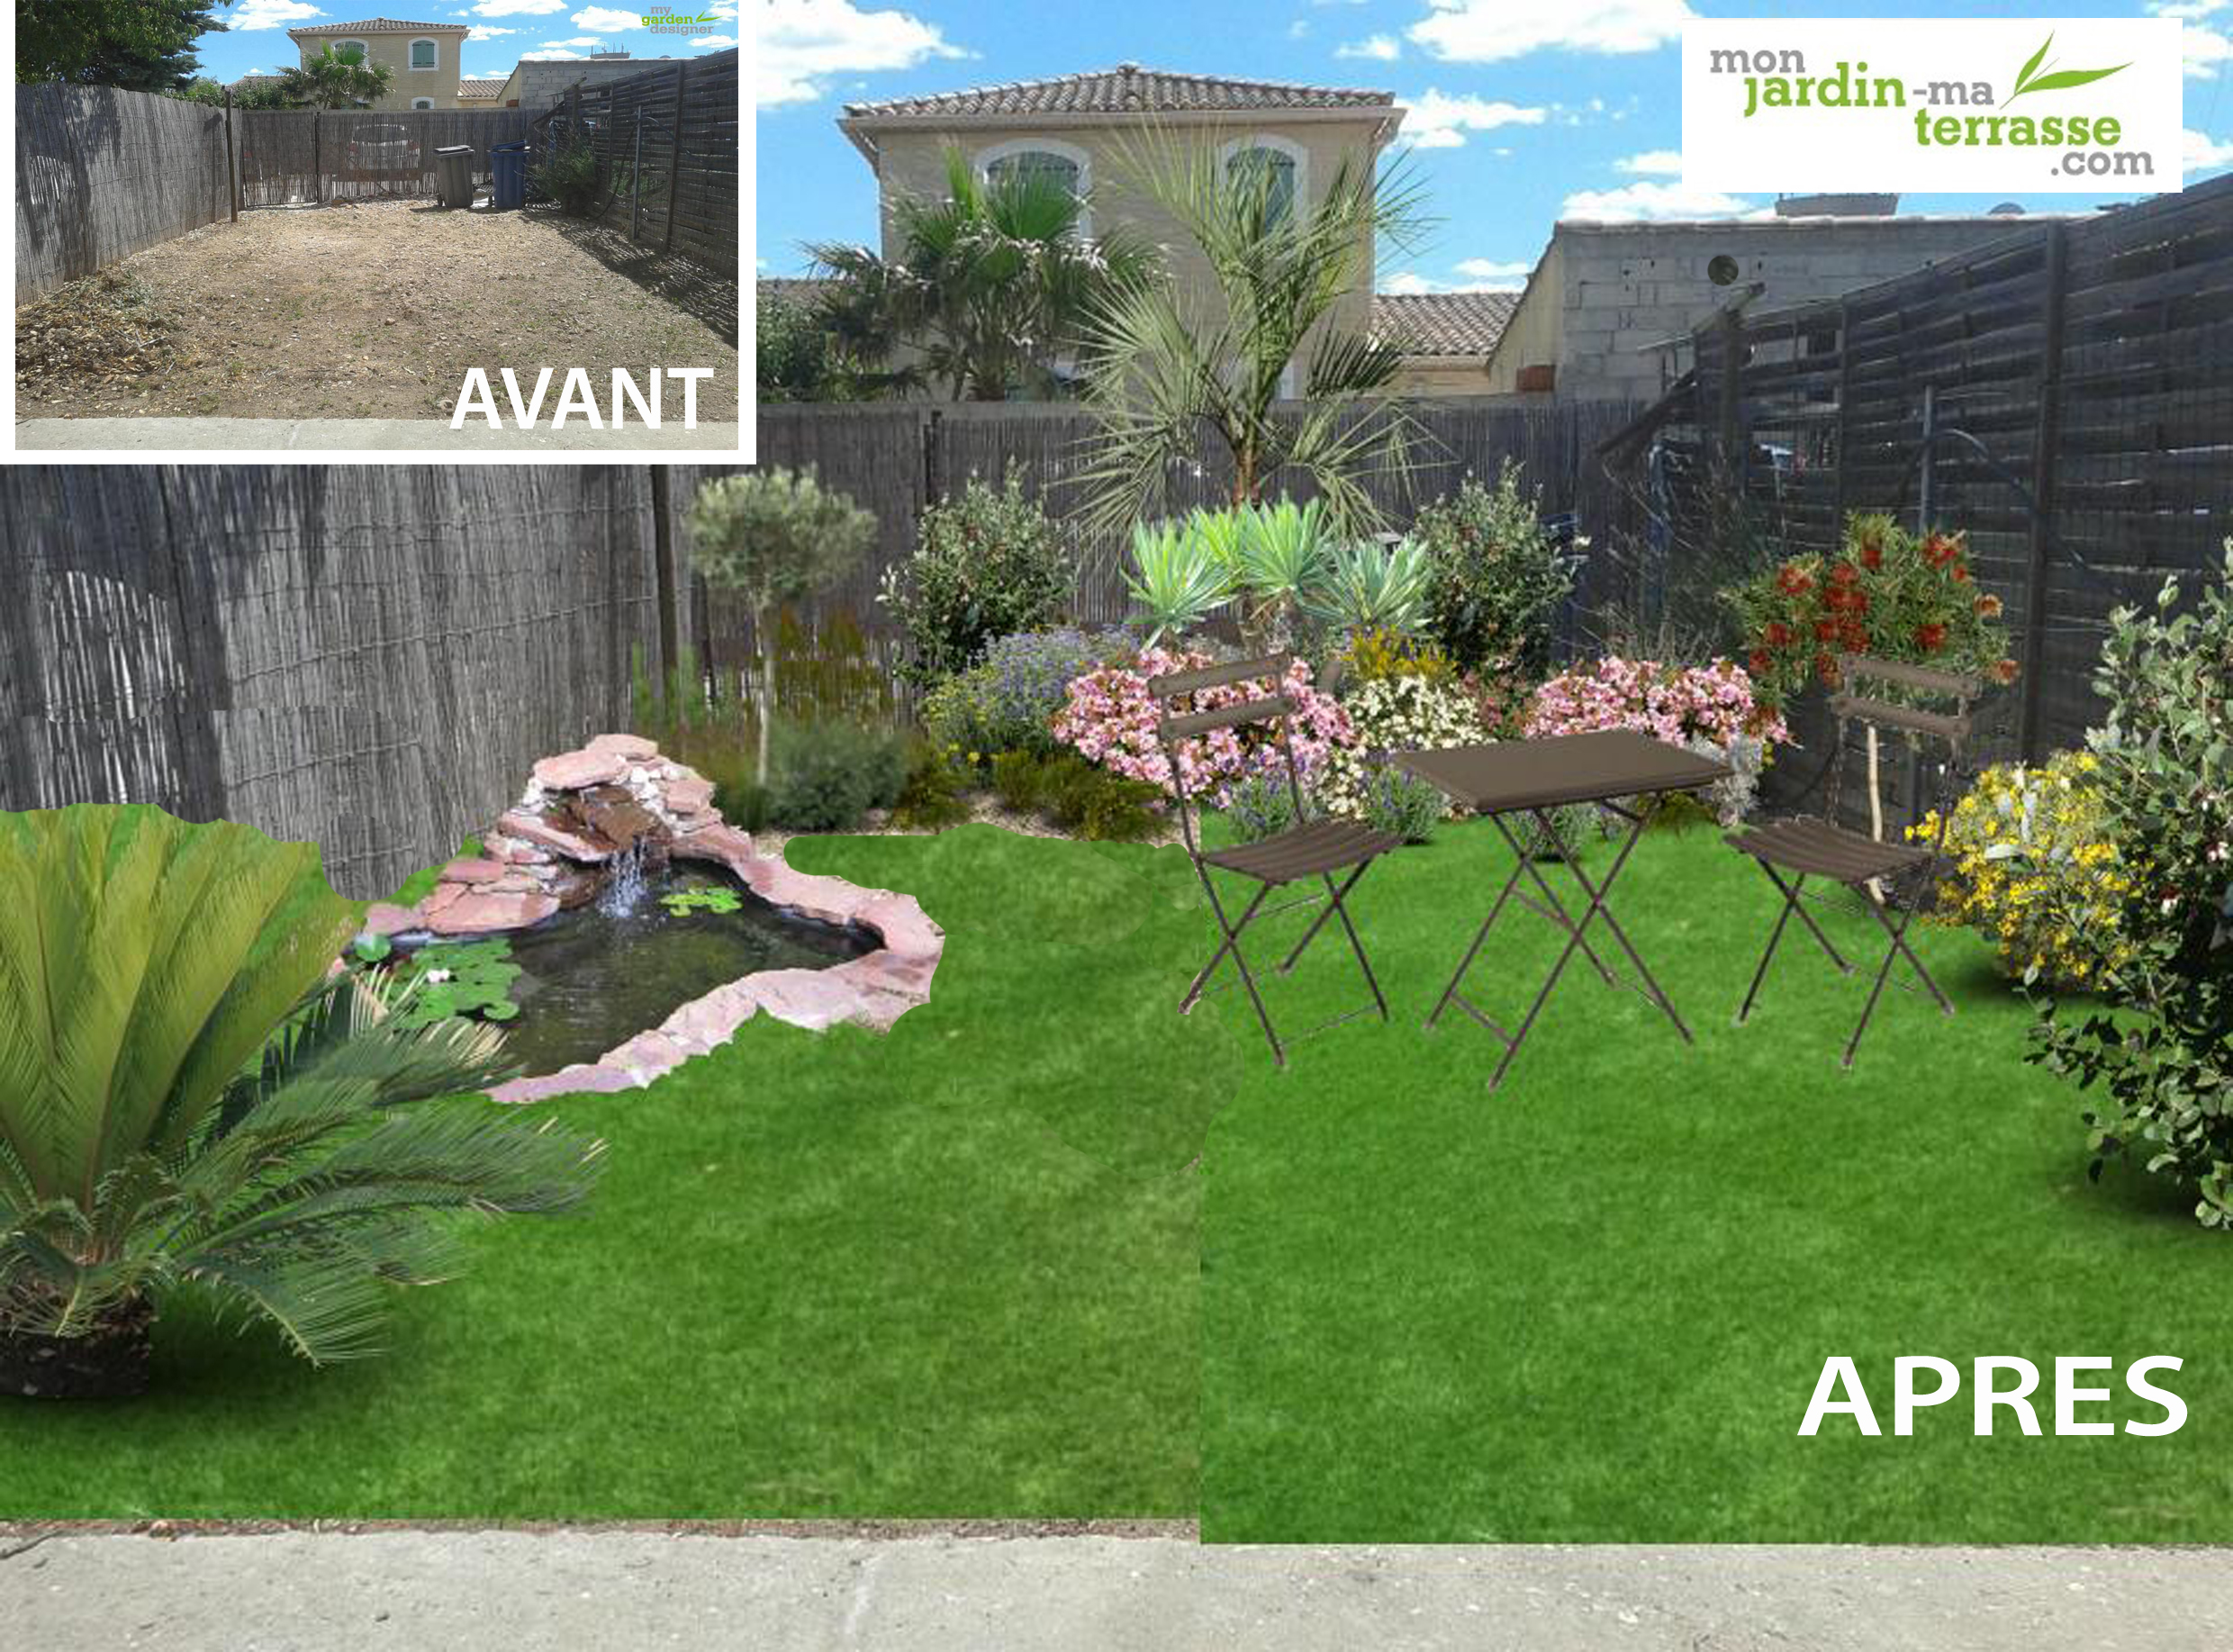 Id e d am nagement d un petit jardin monjardin for Jardin amenagement idee